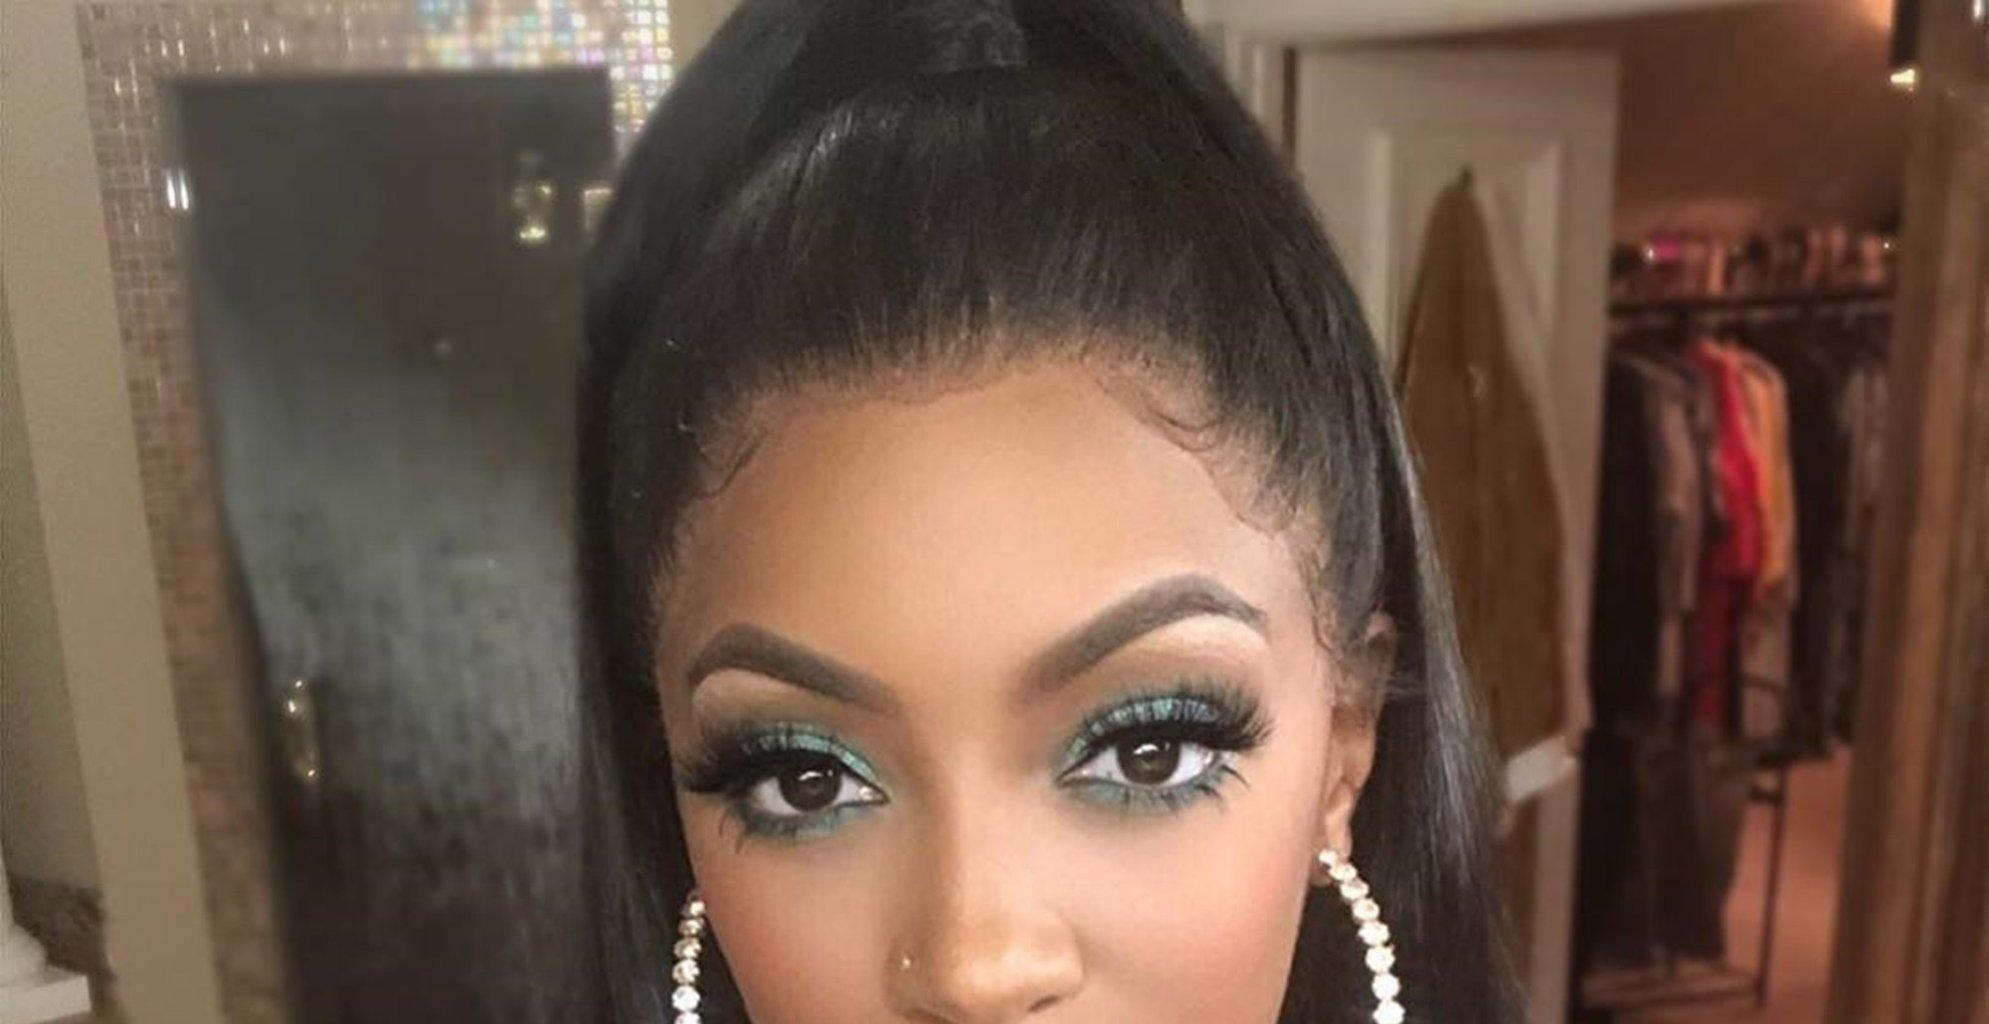 Porsha Williams' Fans Say That She's Getting Skinnier: 'Your Baby Weight Is Gone!' - See Her Latest Photo